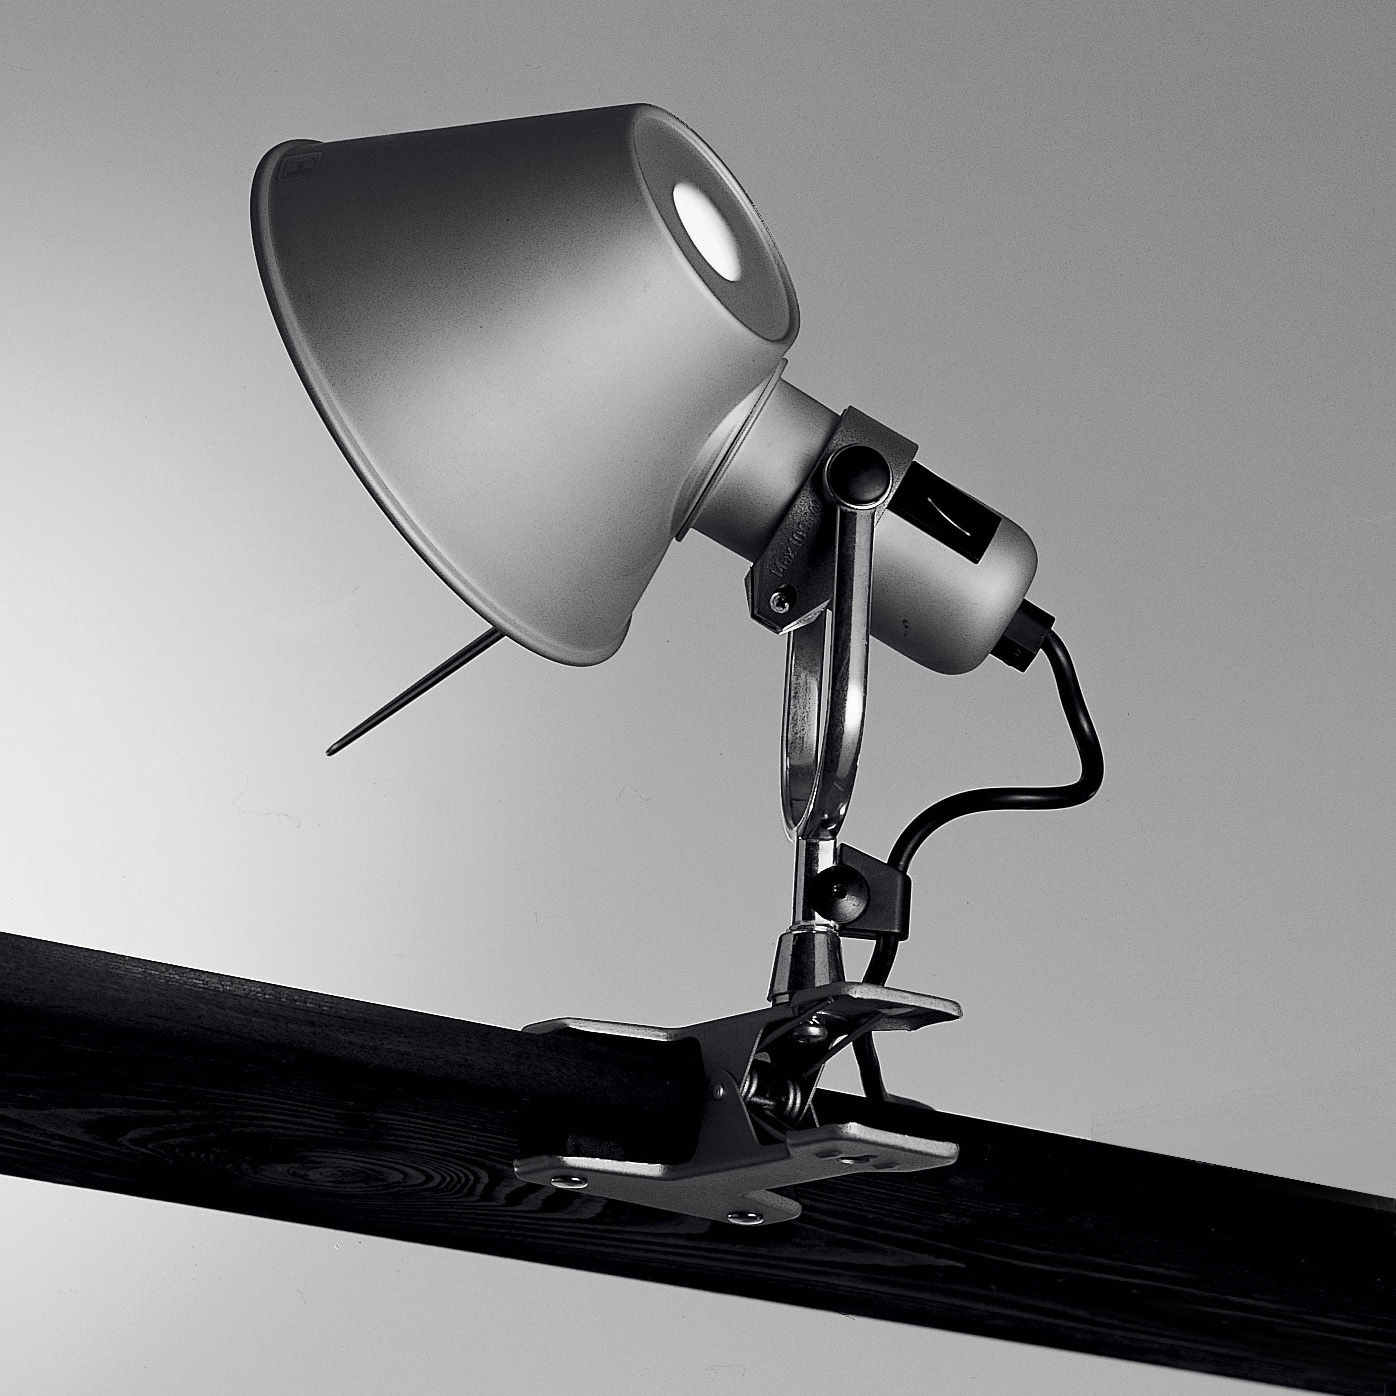 Lighting - Wall Lights - Tolomeo Pinza LED Clip light - LED by Artemide - H 23 cm - Aluminium - Aluminium, Steel